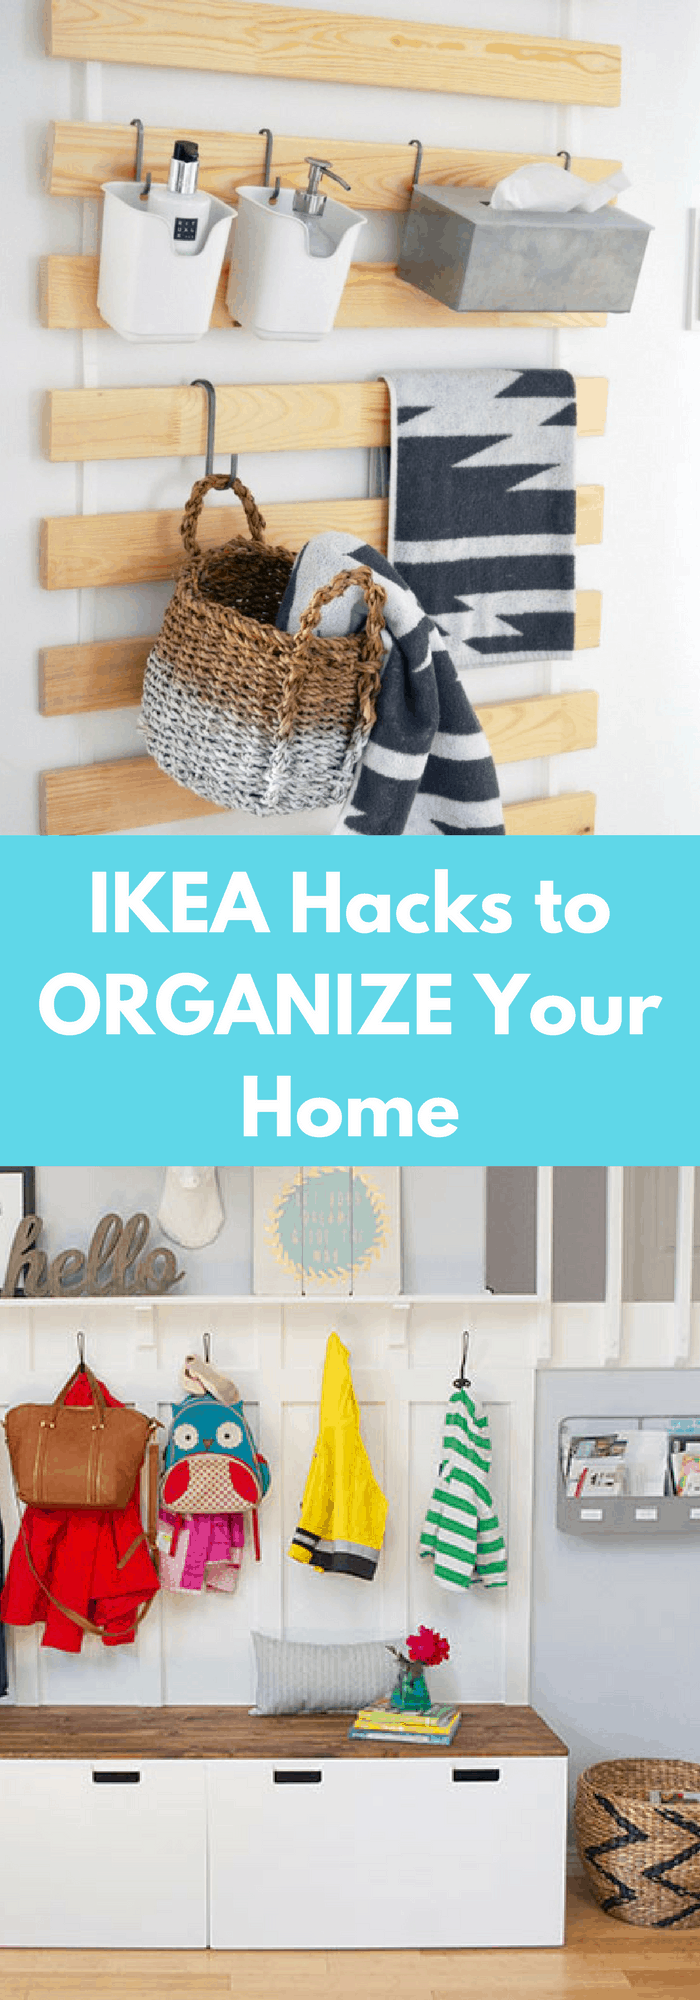 ikea hacks to organize your home